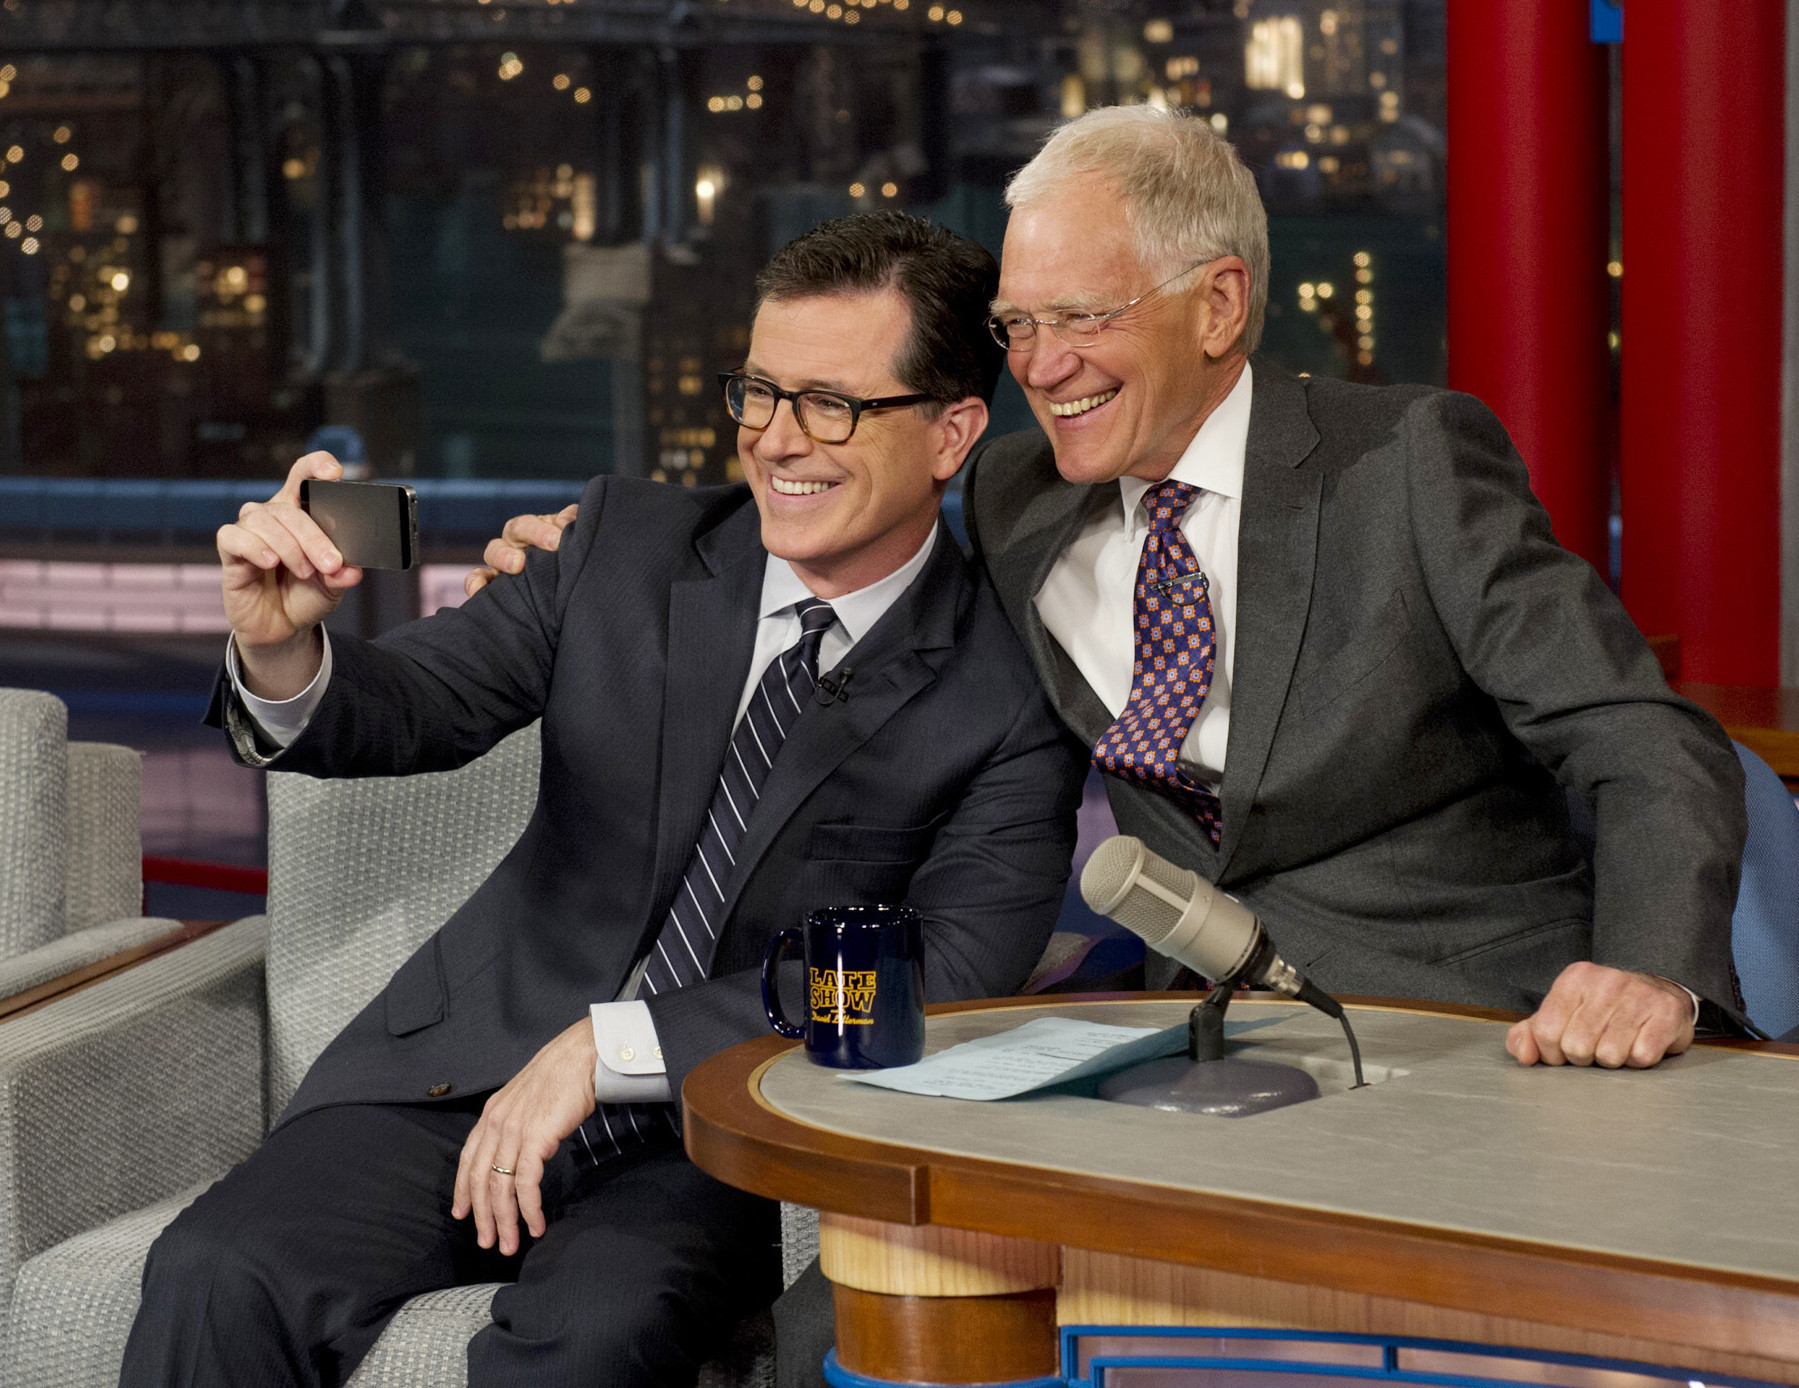 La et st stephen colbert visits david letterman on late show 20140423